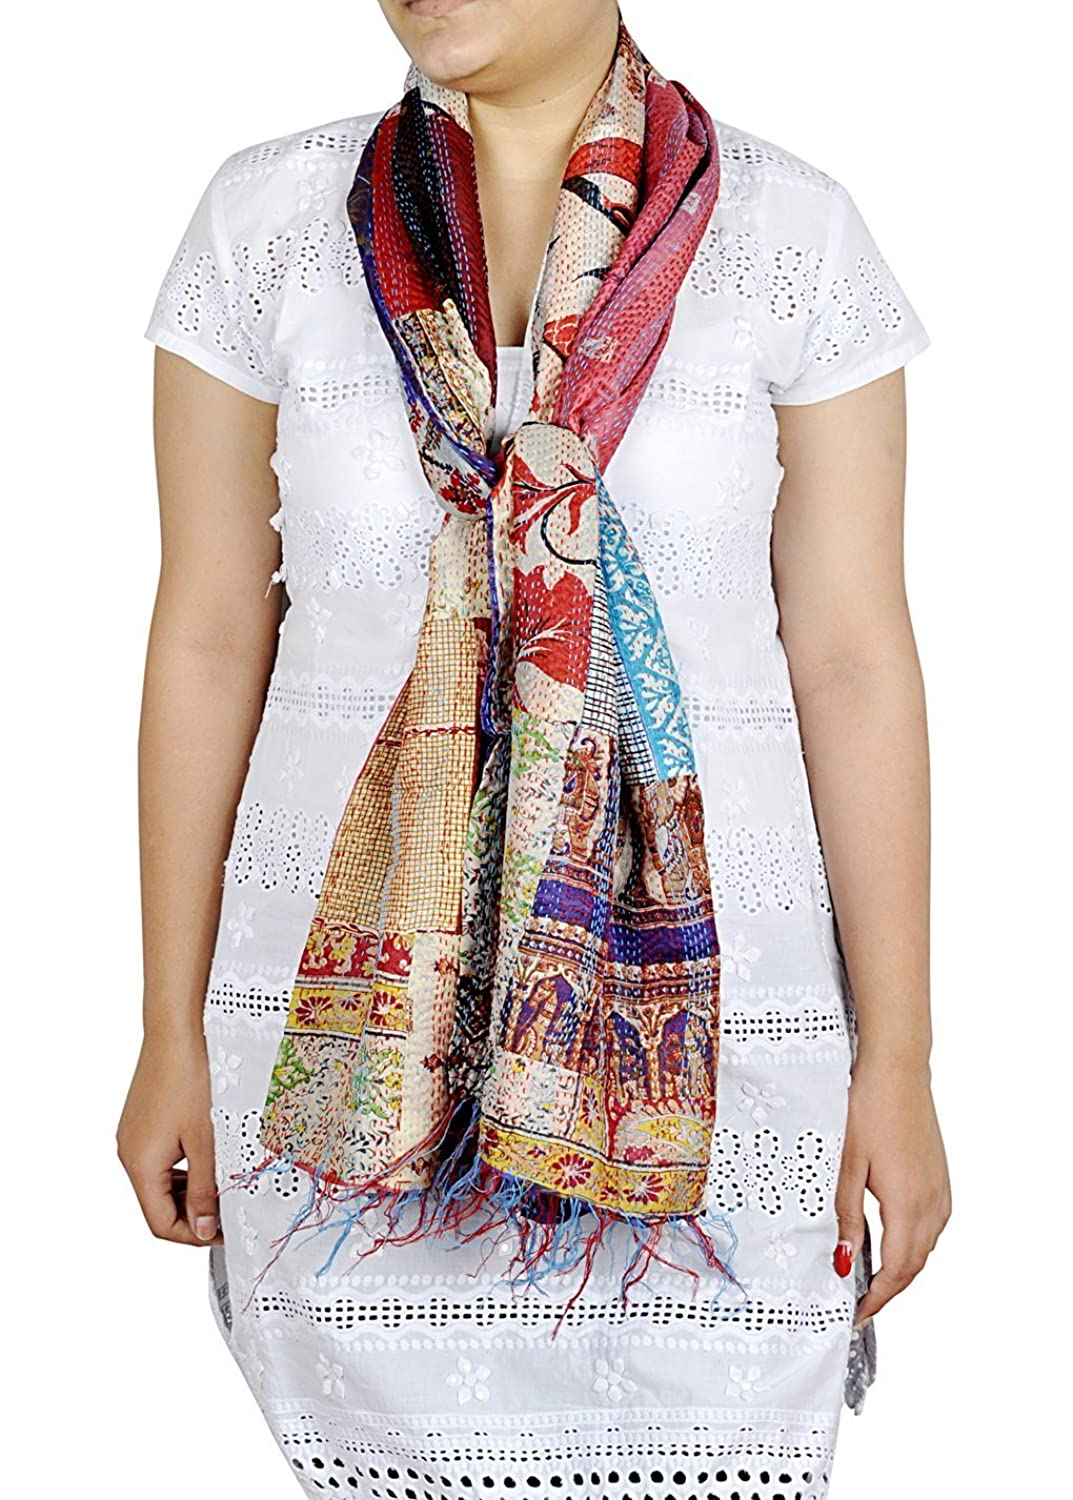 Rajashtnai Formal Kantha Work Decorative Silk Scarve Shawl